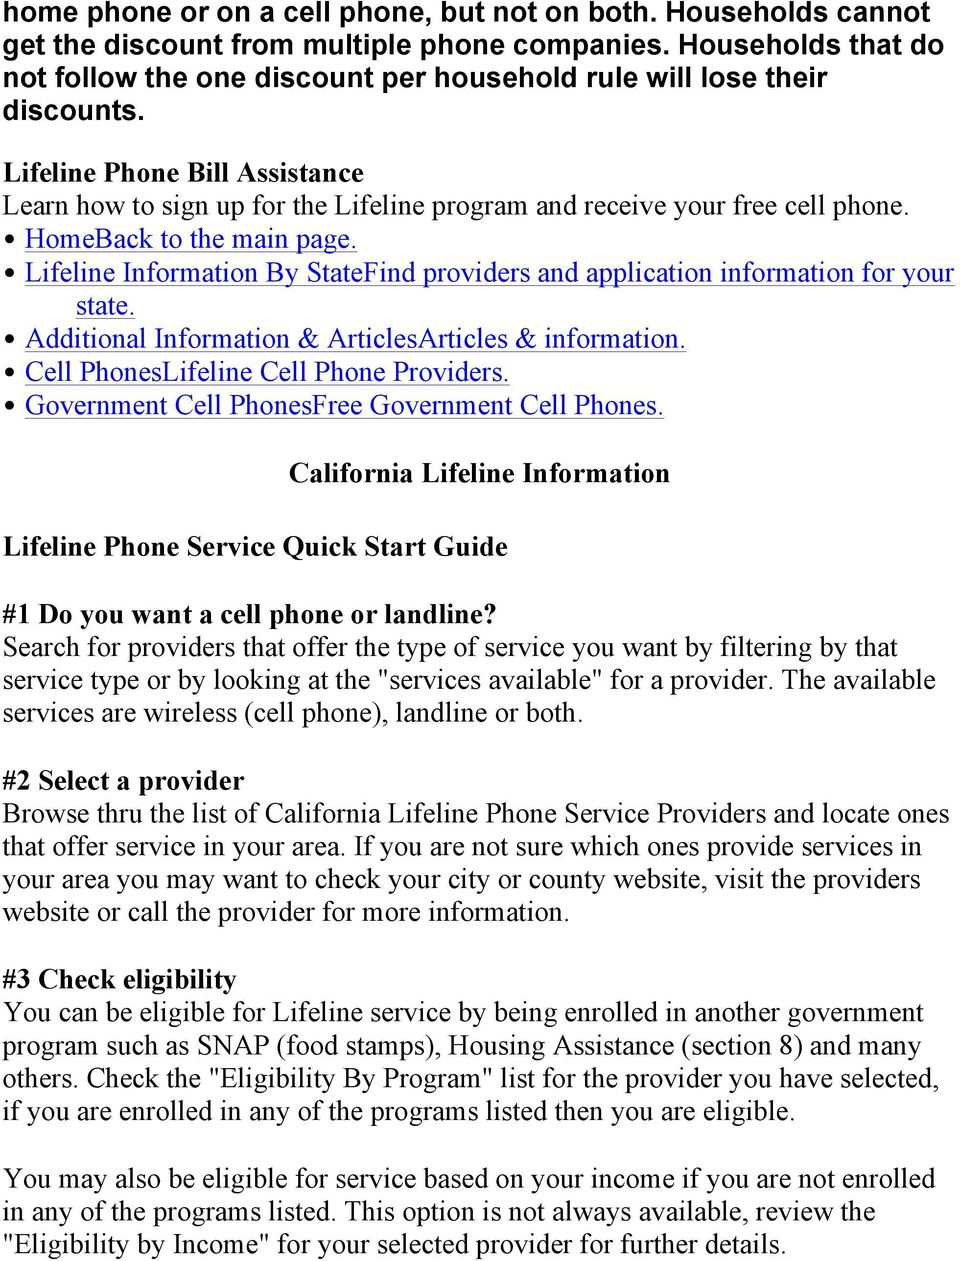 Lifeline Phone Bill Assistance Learn how to sign up for the Lifeline  program and receive your